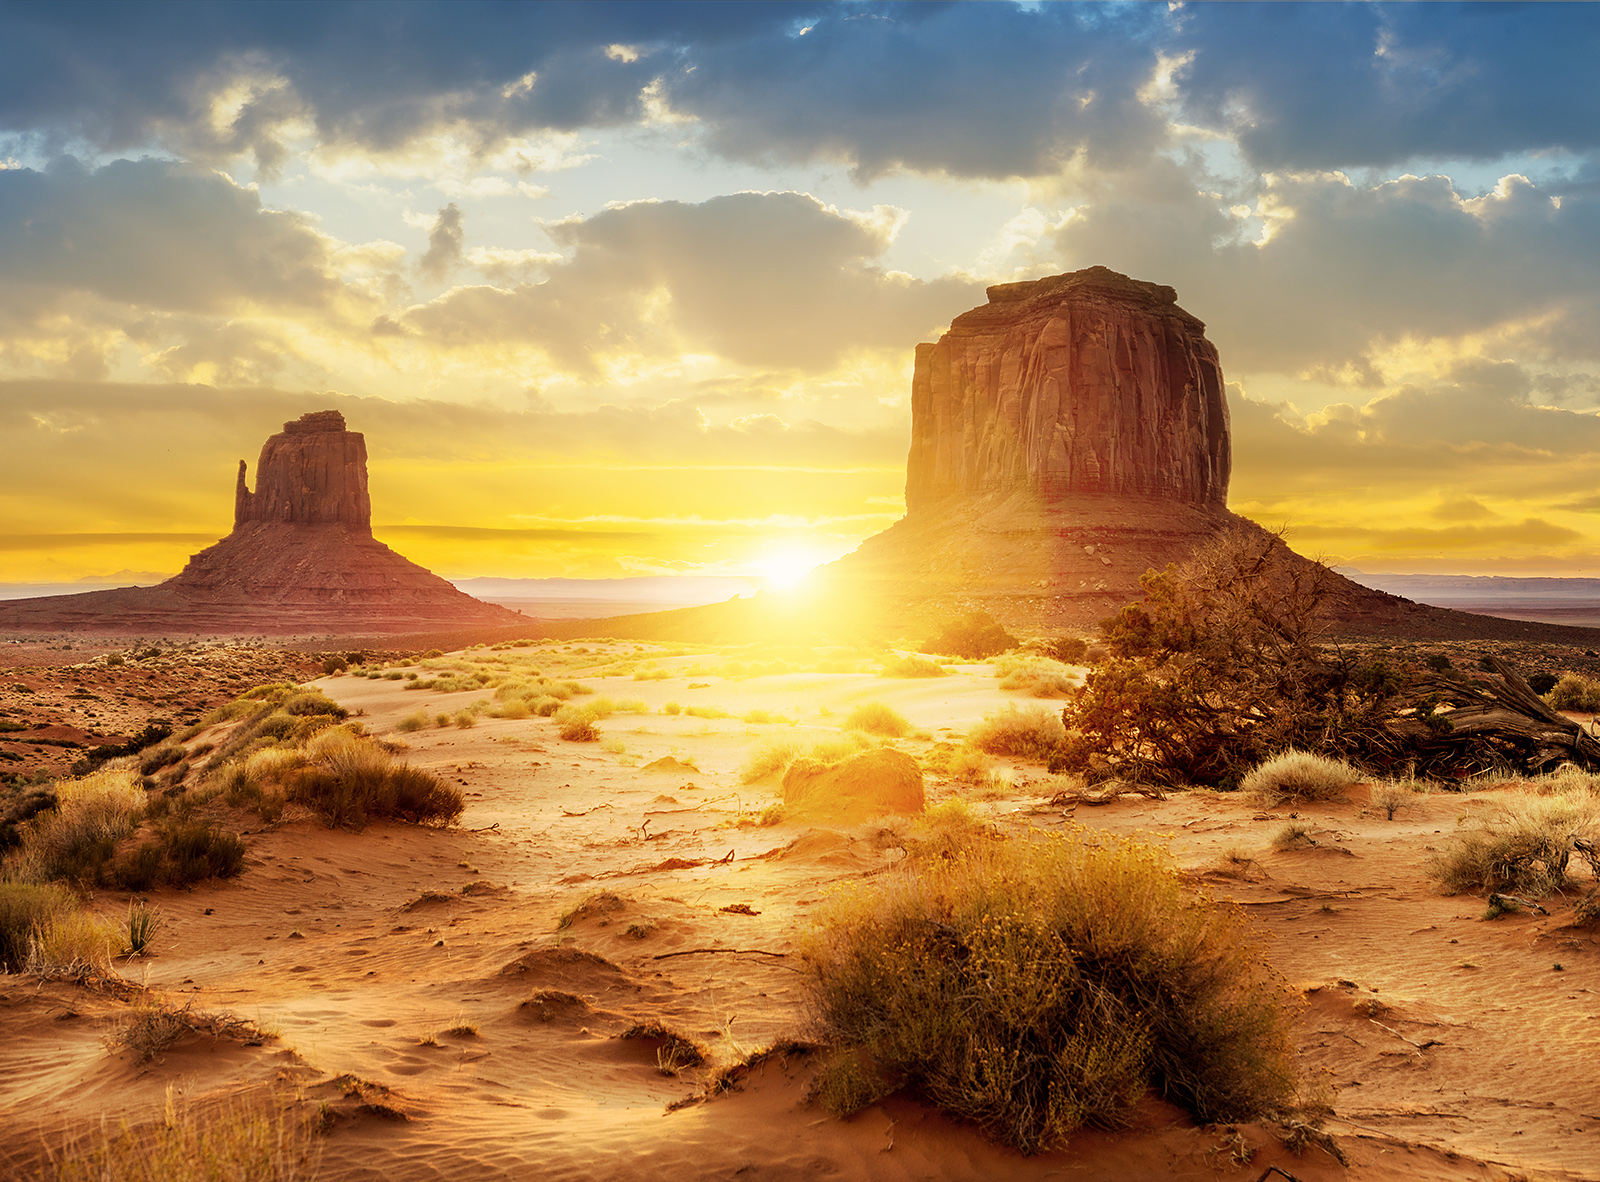 desert sunset wall sticker